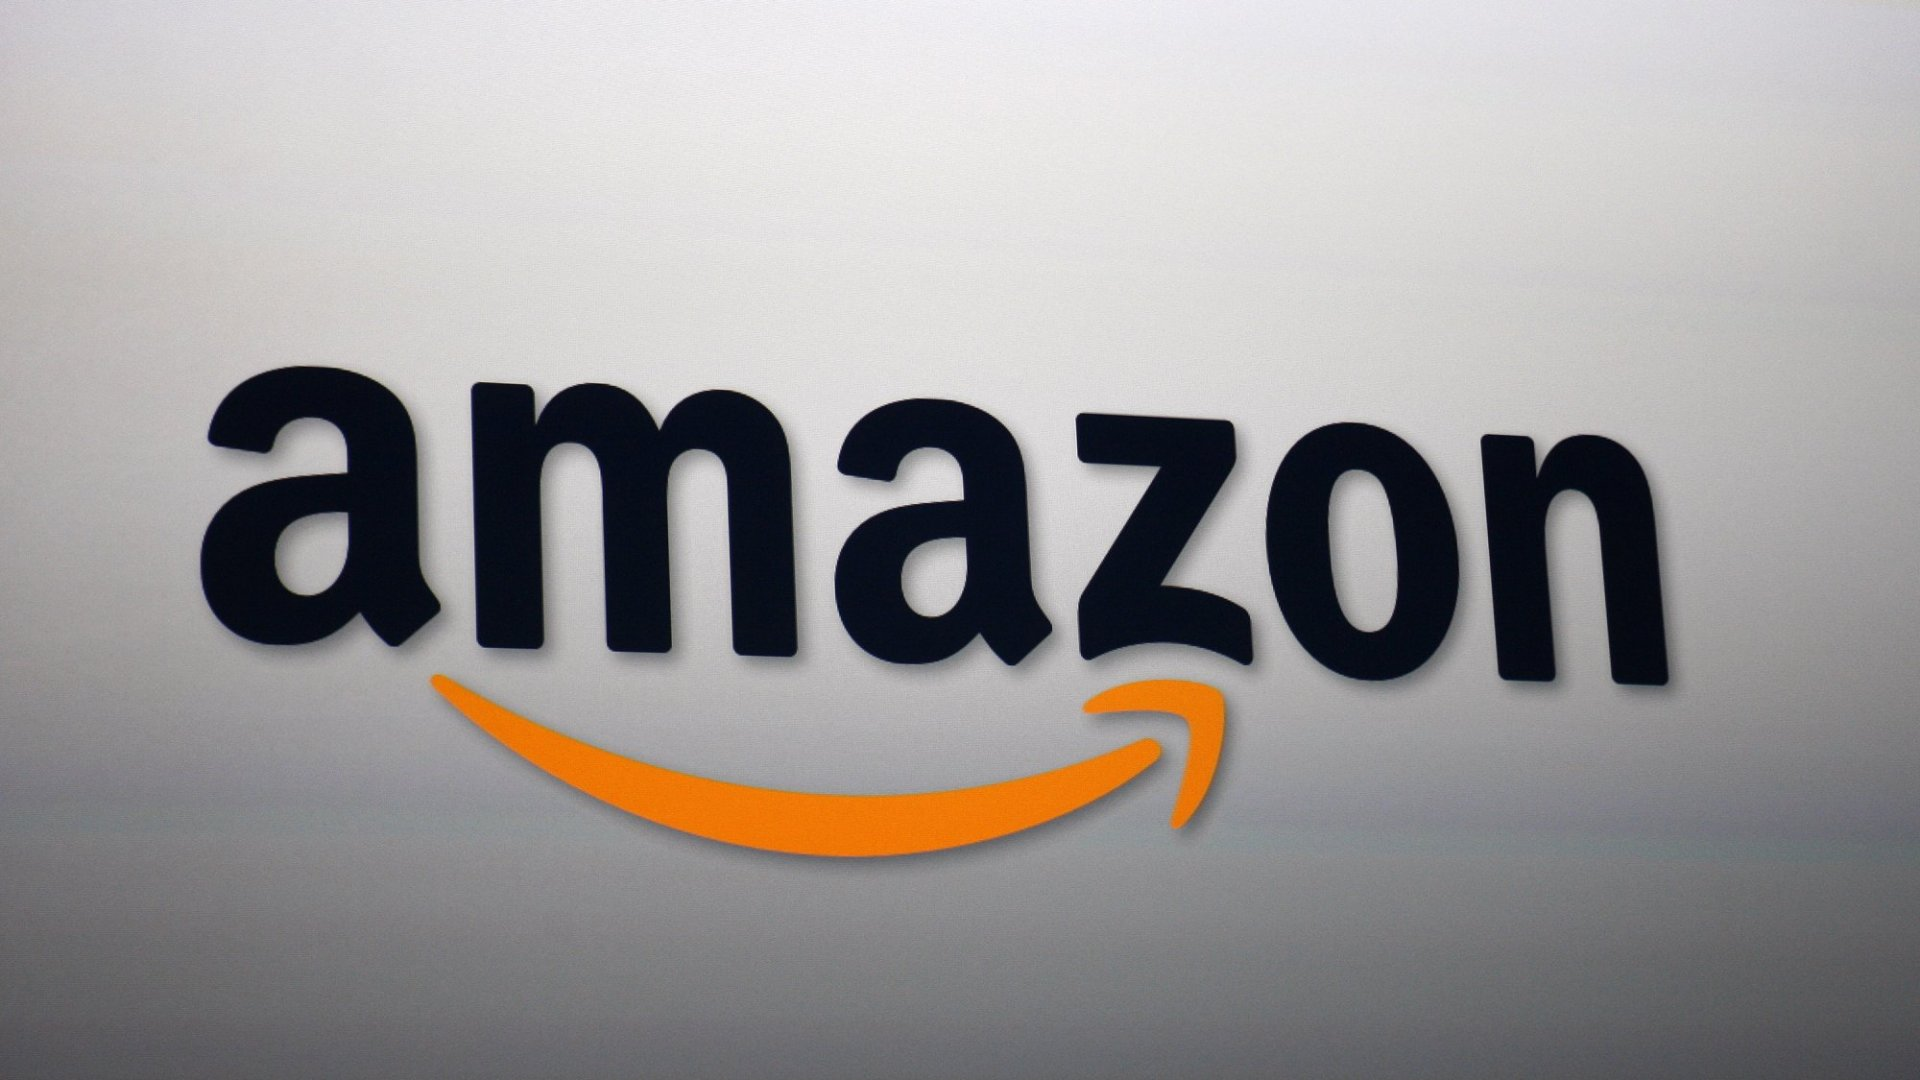 Follow these suggestions and you will make the Amazon interviewer happy.